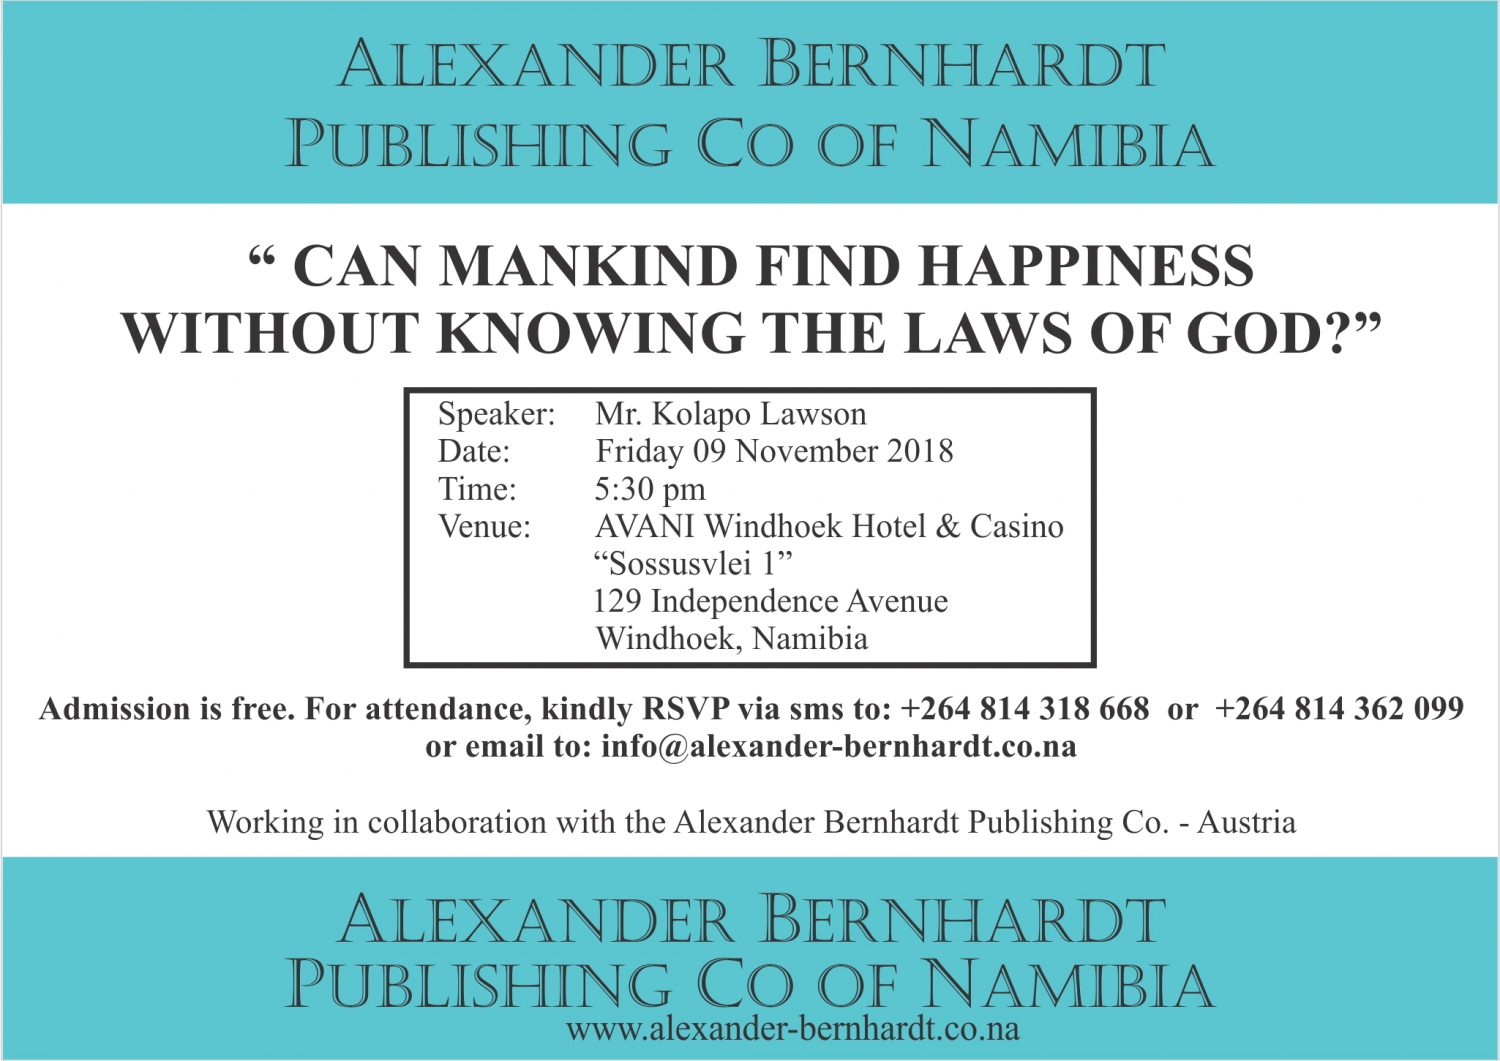 Can mankind find happiness without knowing the laws of God?